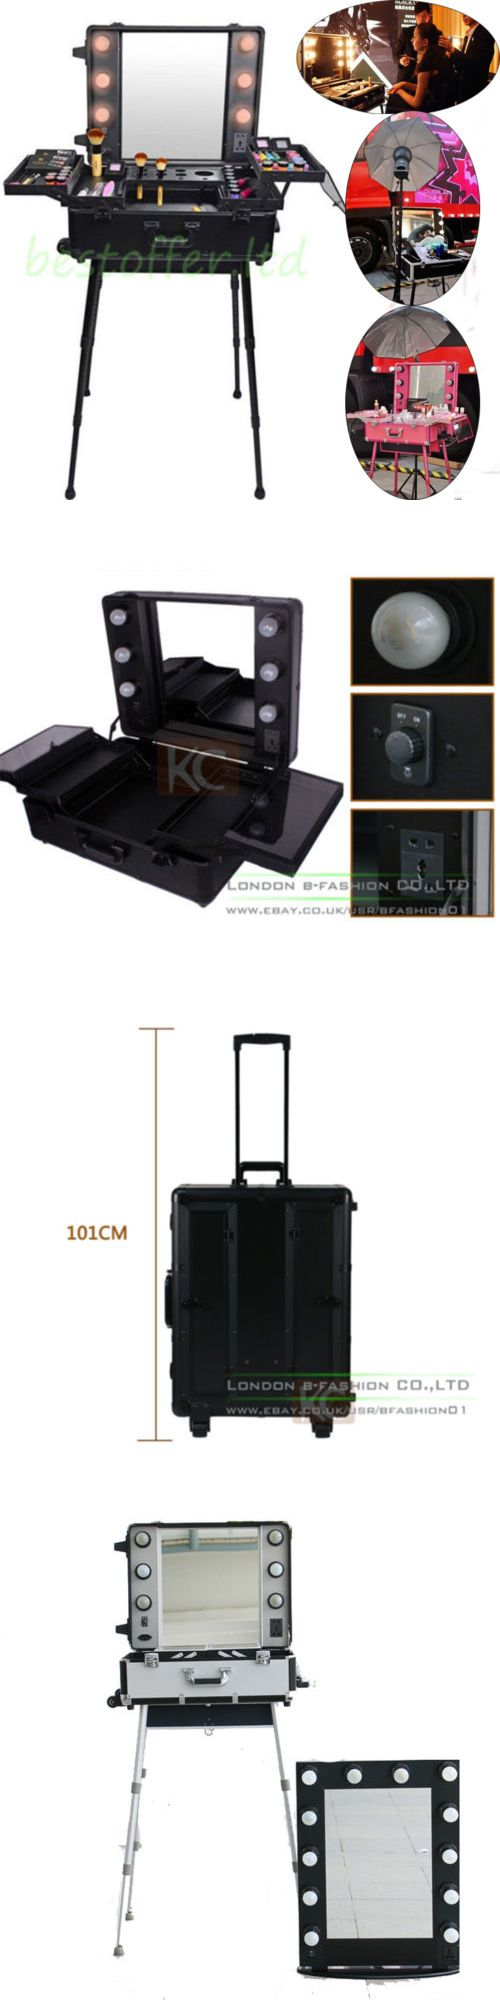 Makeup Bags and Cases: Makeup Storage Box Train Cosmetic Luggage Organizer Studio Beauty Rolling Mirror -> BUY IT NOW ONLY: $359.95 on eBay!